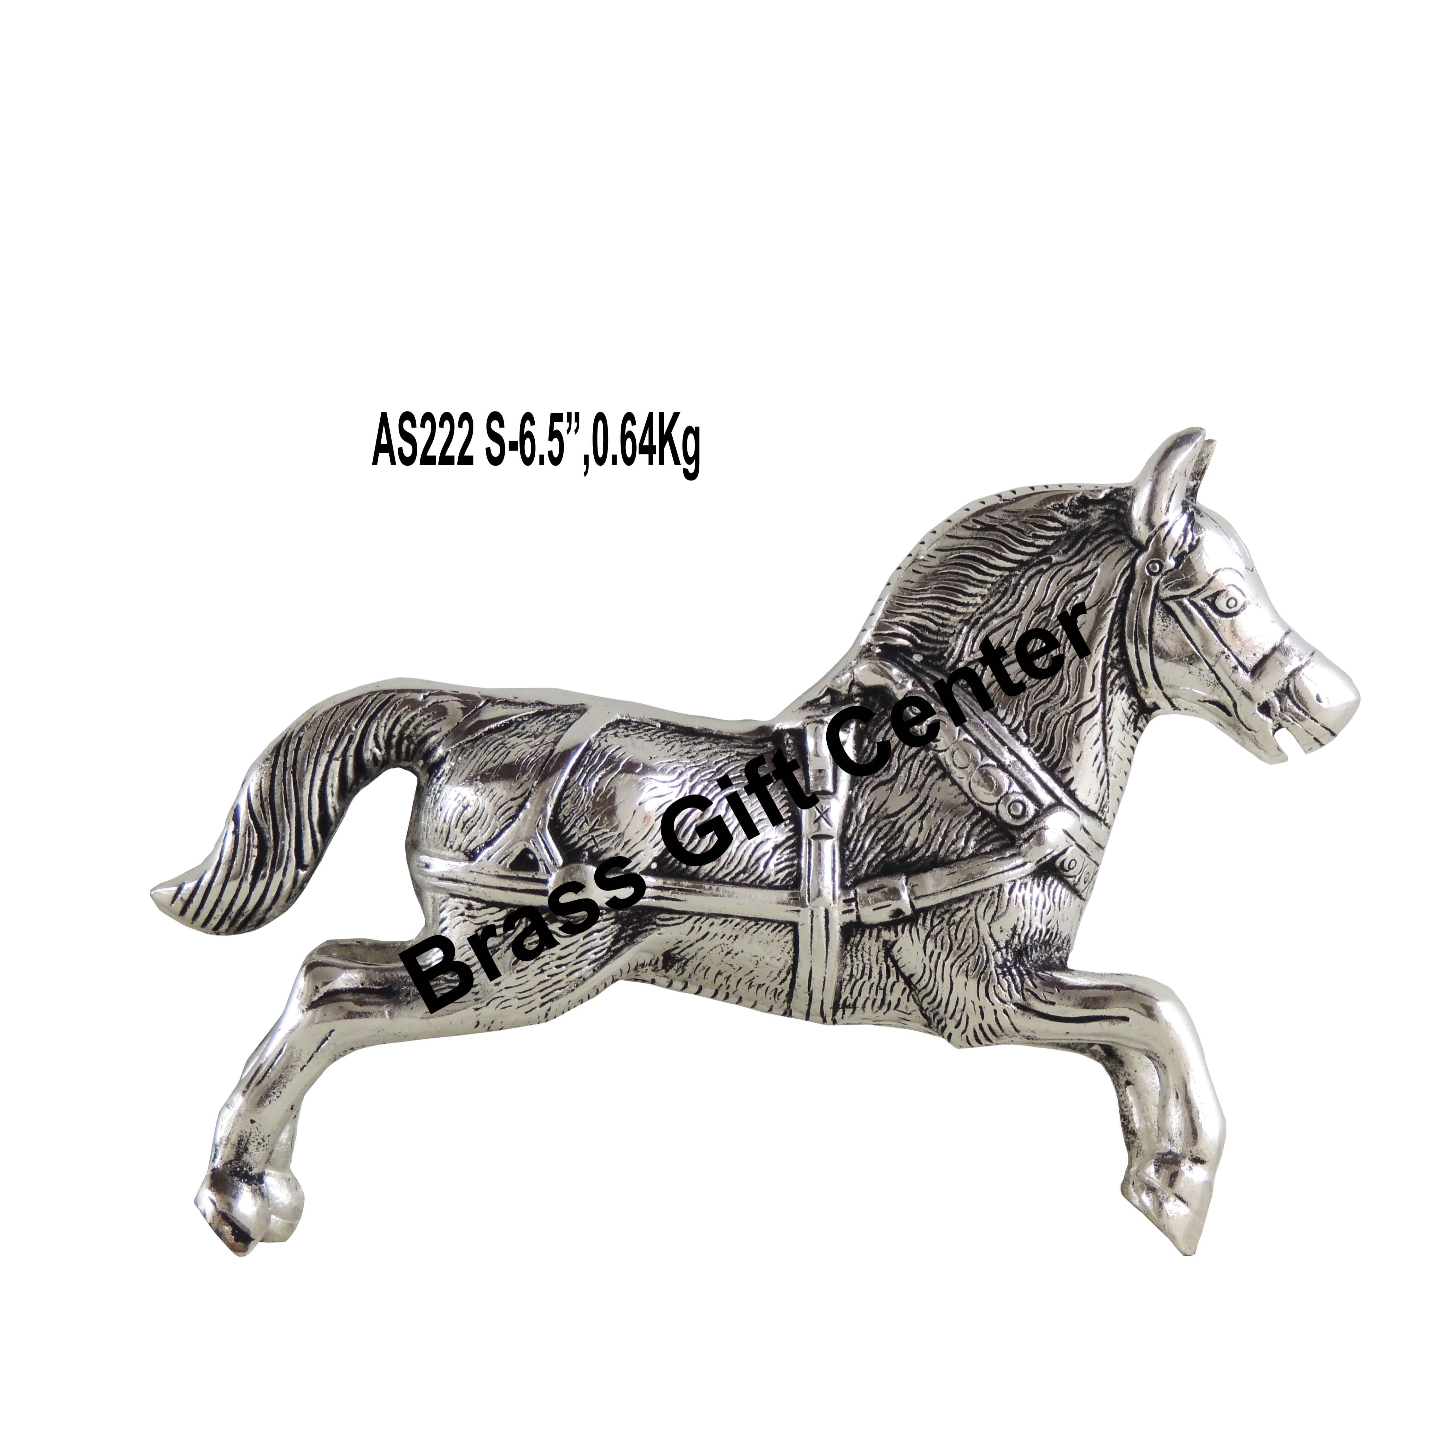 Metallic Running Horse Decorative Showpiece In Silver Antique Finish - 9.6*2.5*6.5 Inch (AS222 S)